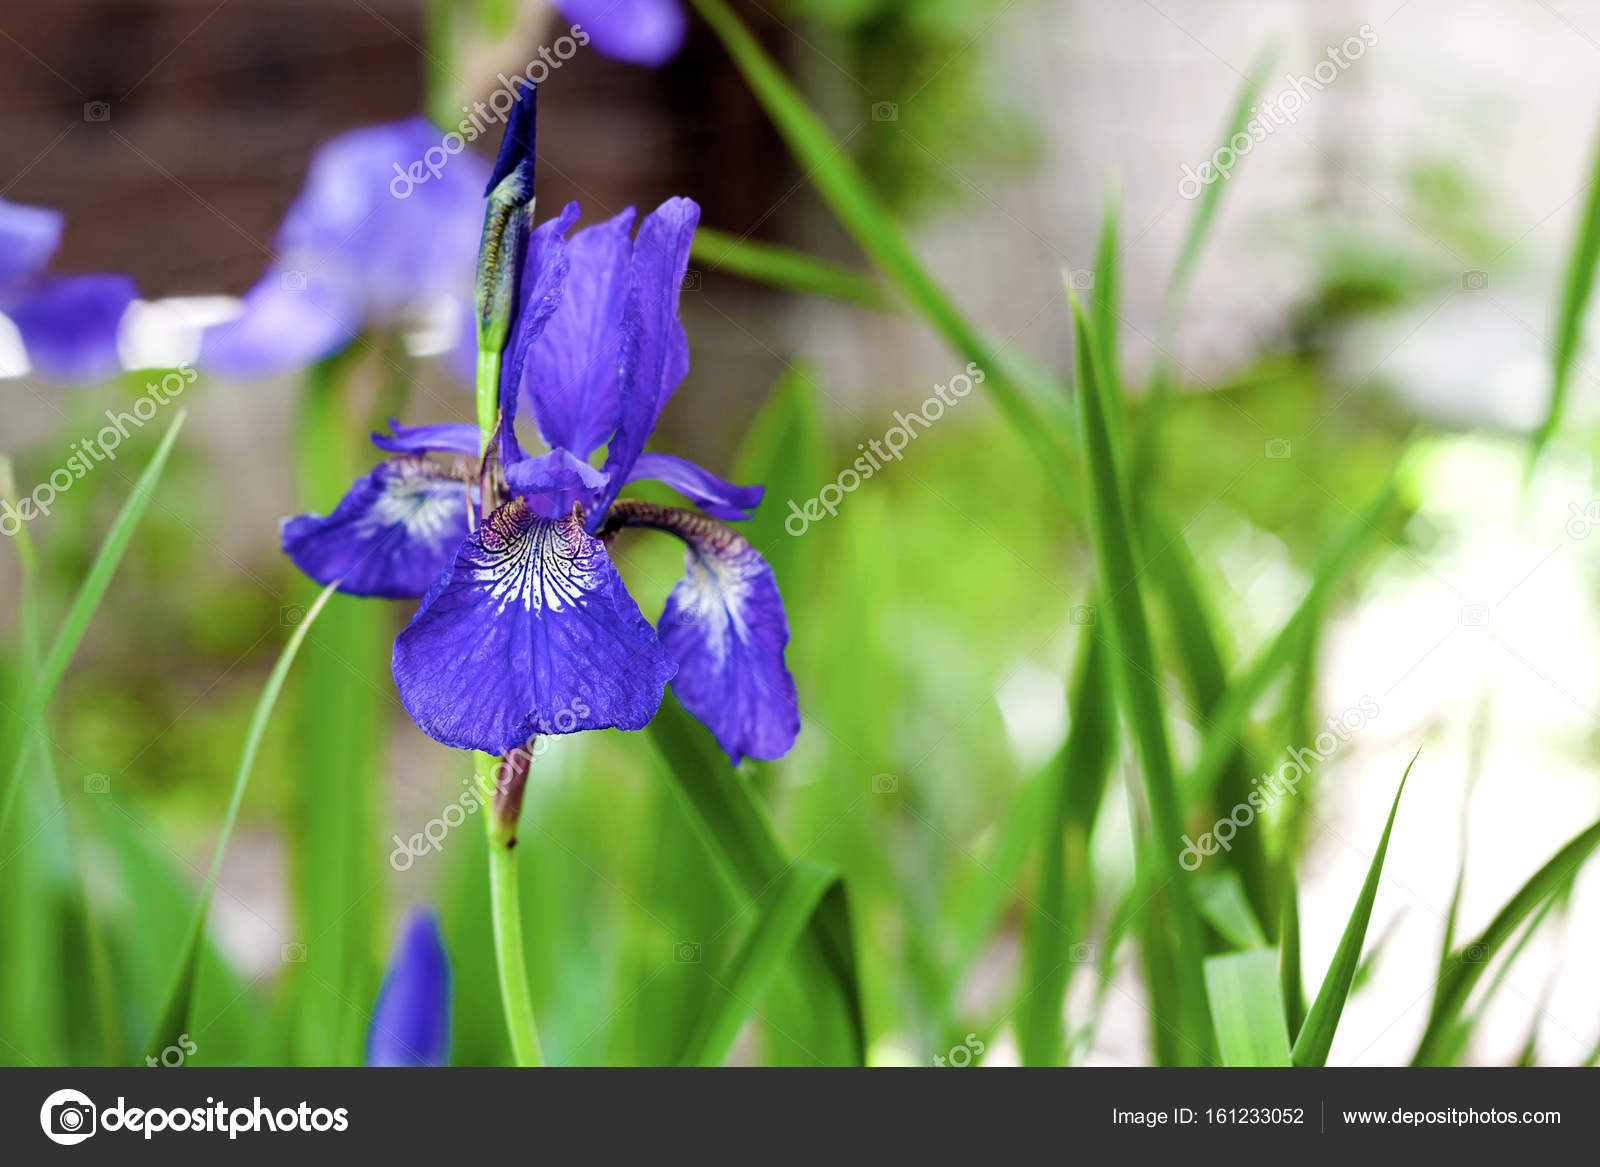 Blue siberian iris flower closeup on green garden background stock blue siberian iris flower closeup on green garden background photo by tynza izmirmasajfo Choice Image